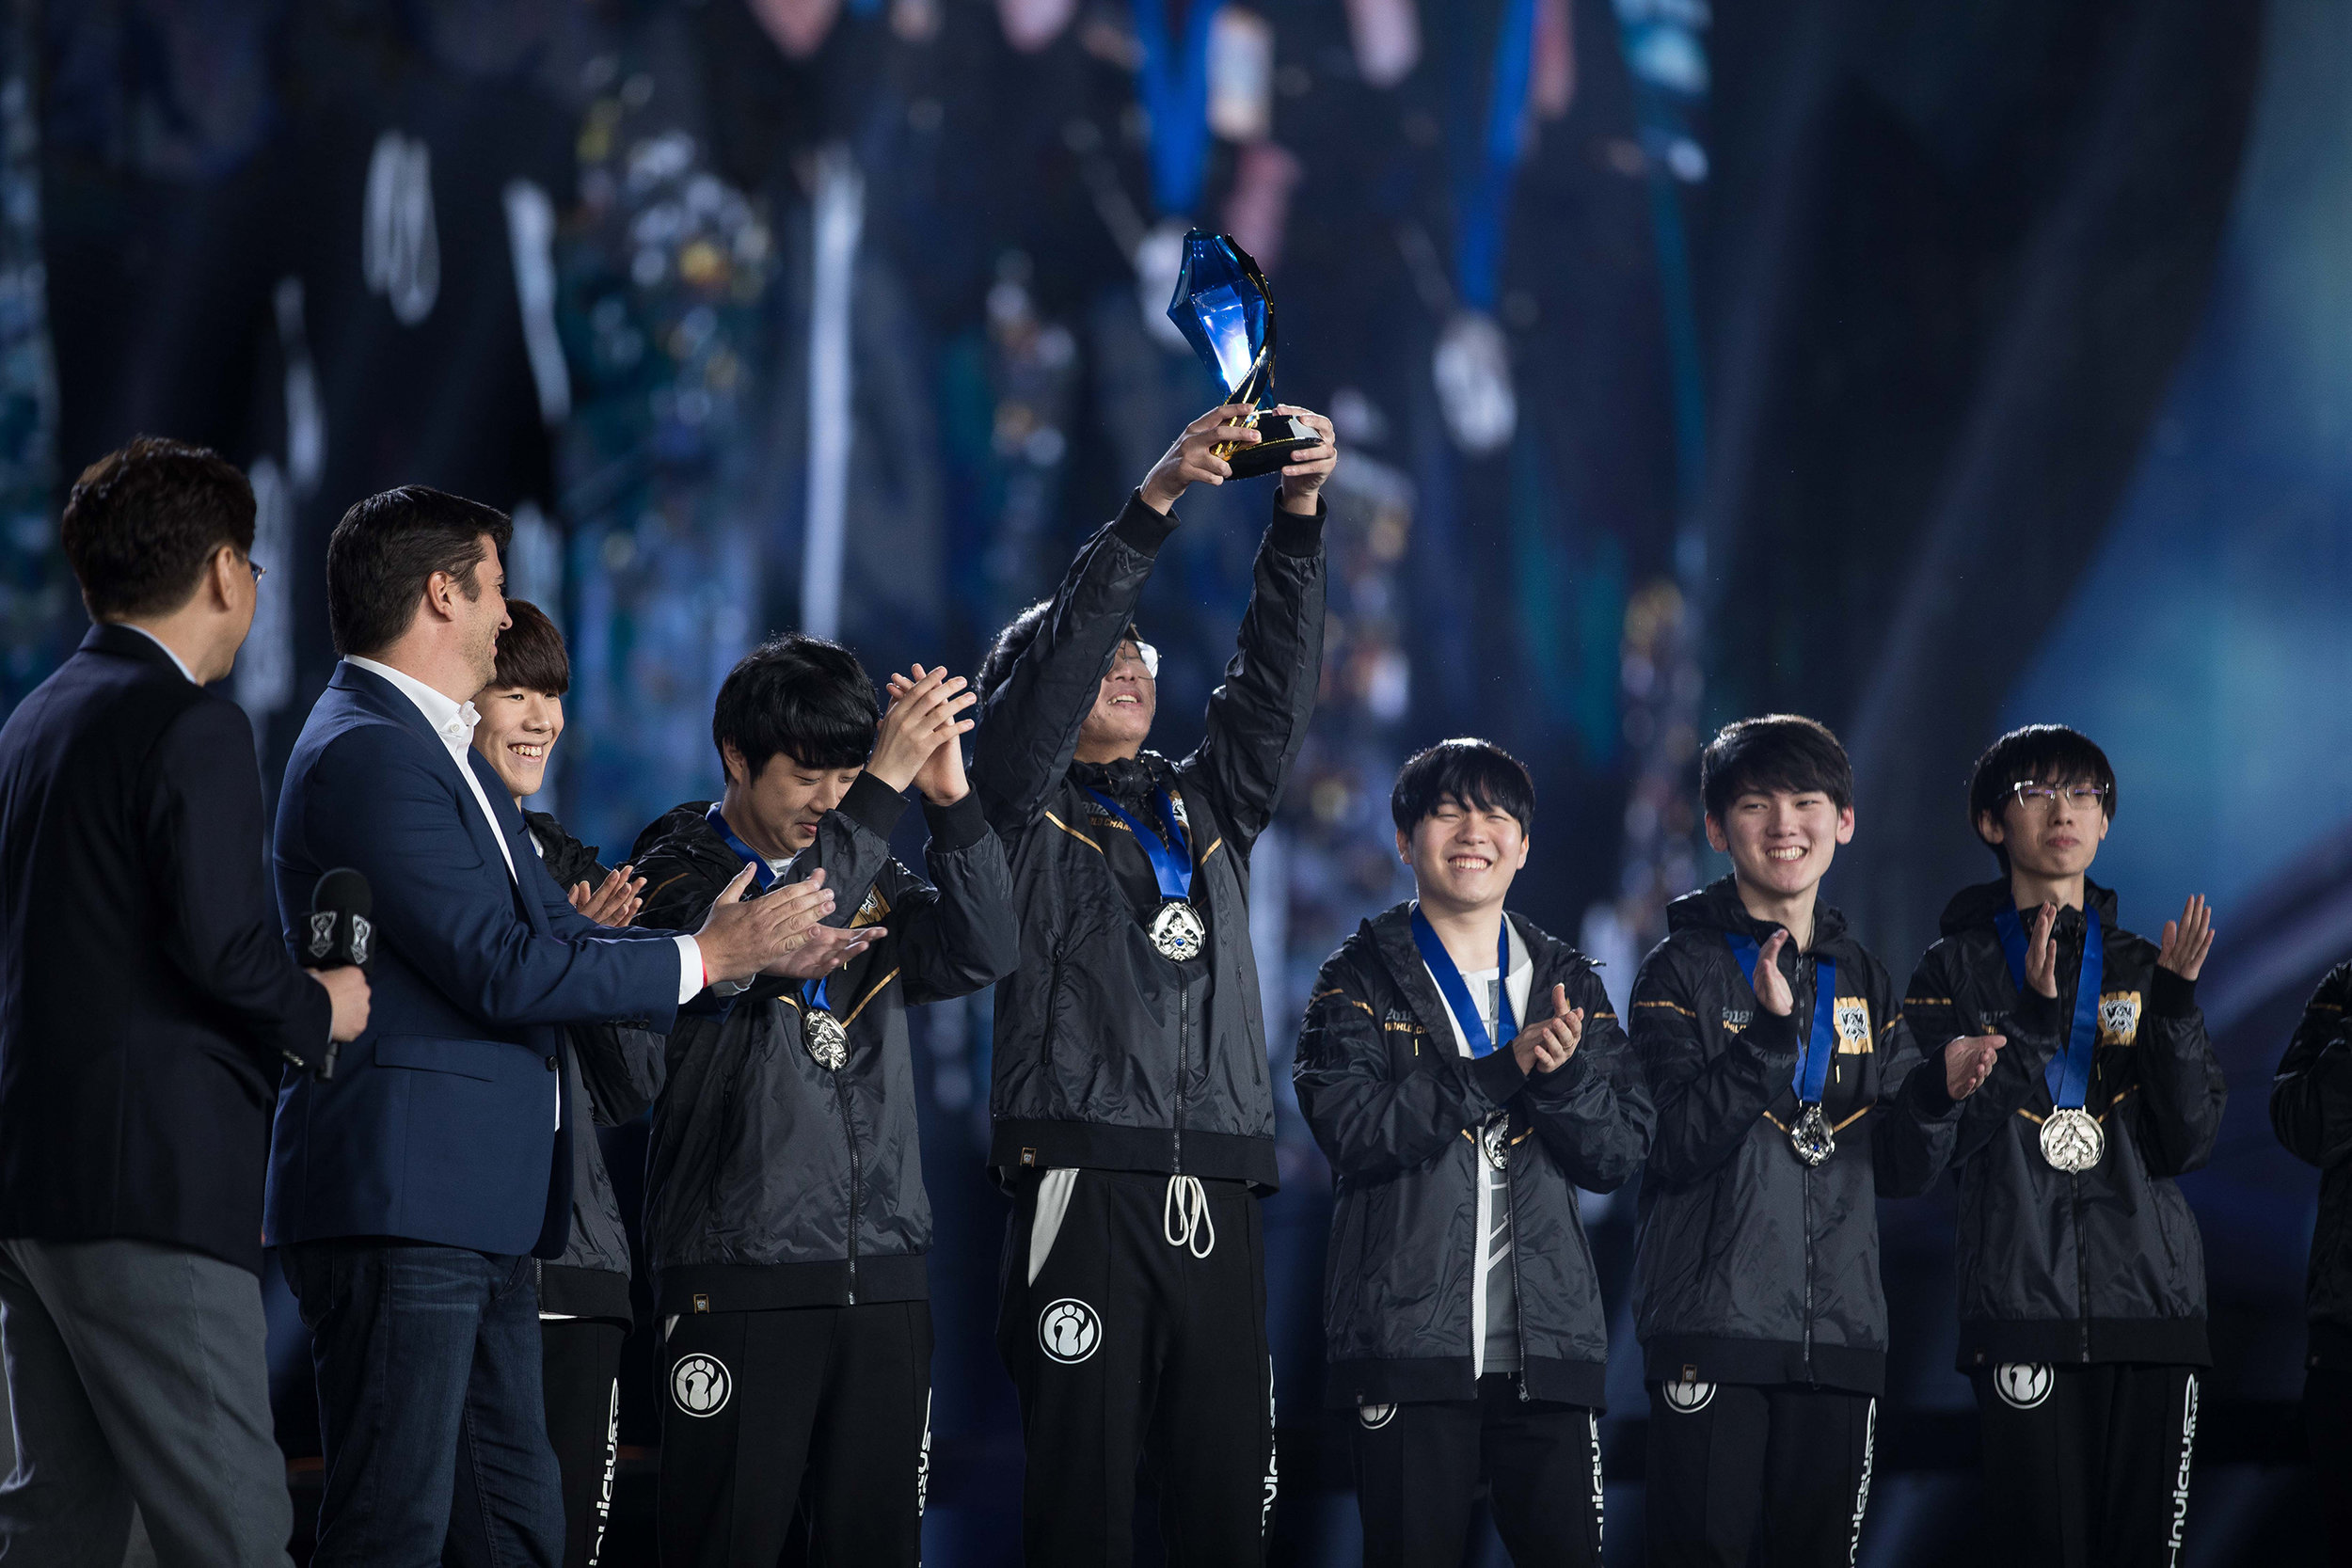 Invictus Gaming players receive their 2018 League of Legends World Championship medals on stage, sponsored by Mastercard on November 3, 2018 in Incheon, South Korea.  Photo by Hannah Smith/ESPAT Media for Mastercard